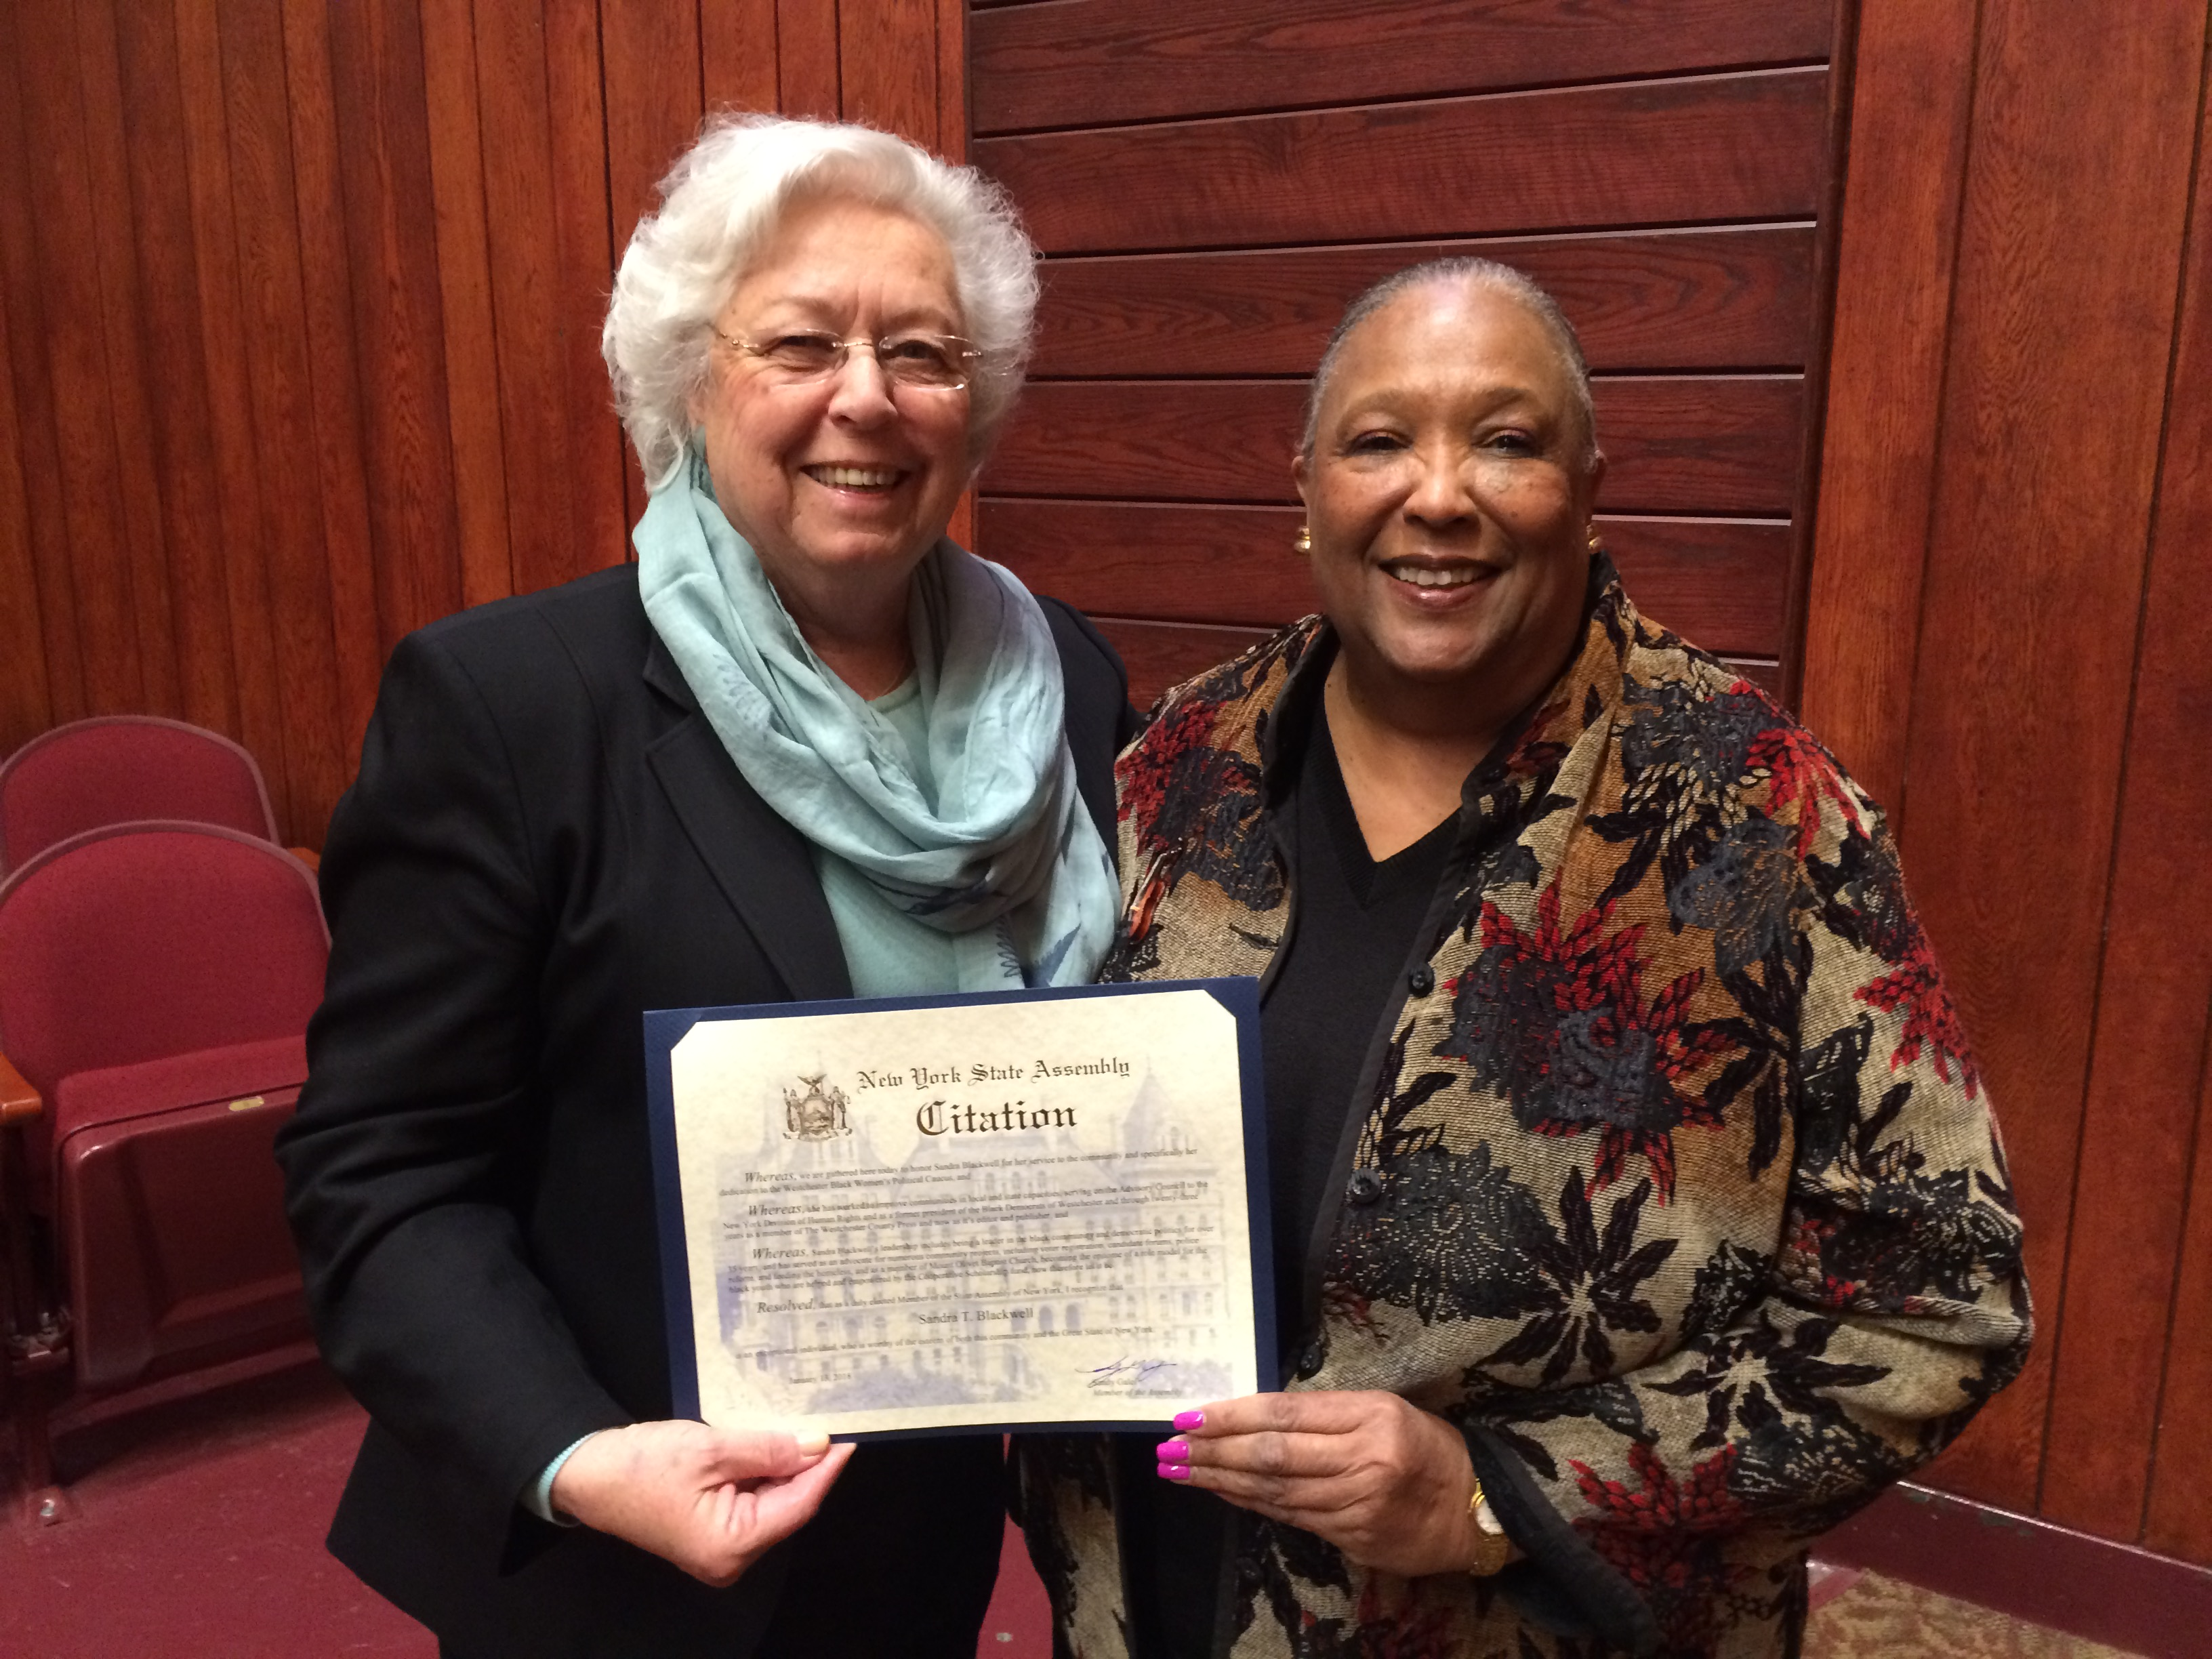 Sandy presented an award to Sandra Blackwell, a publisher and CEO of the Westchester County Press.